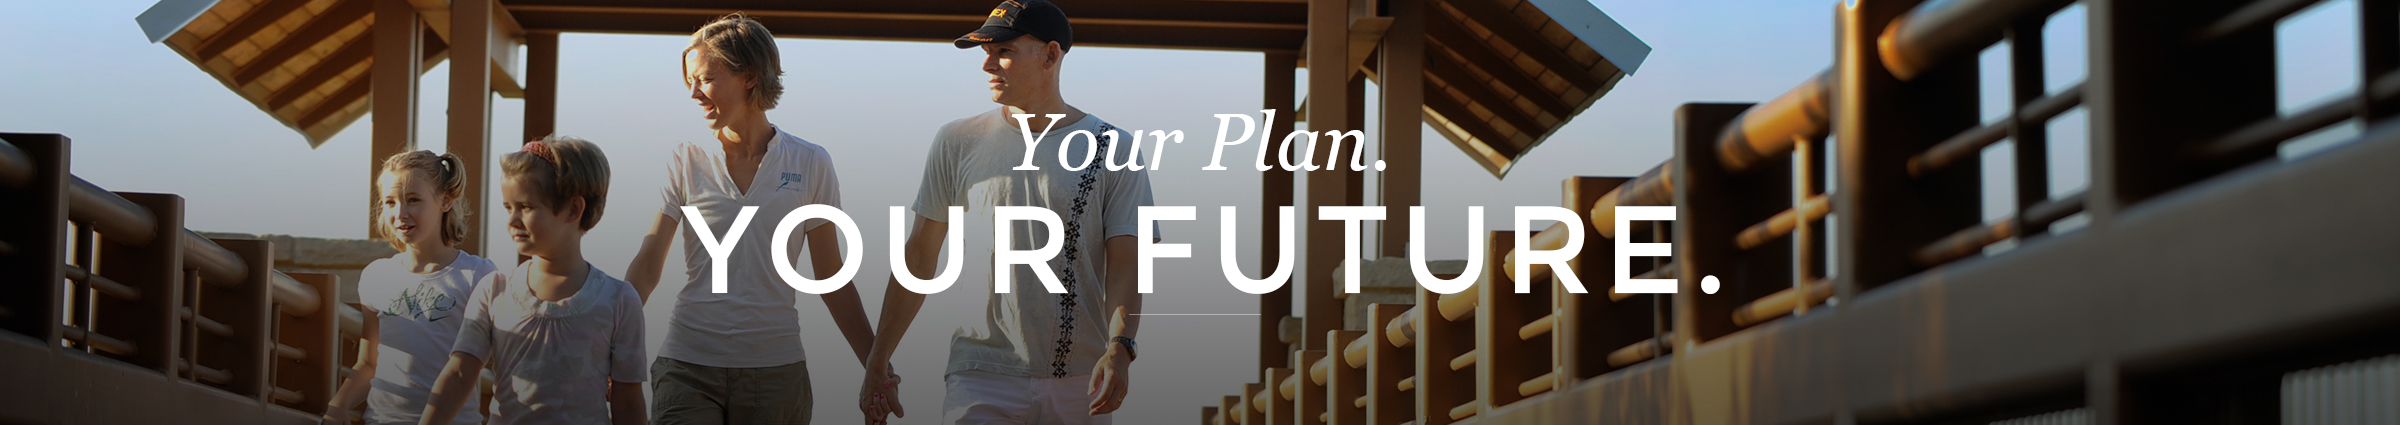 Your Plan Your Future